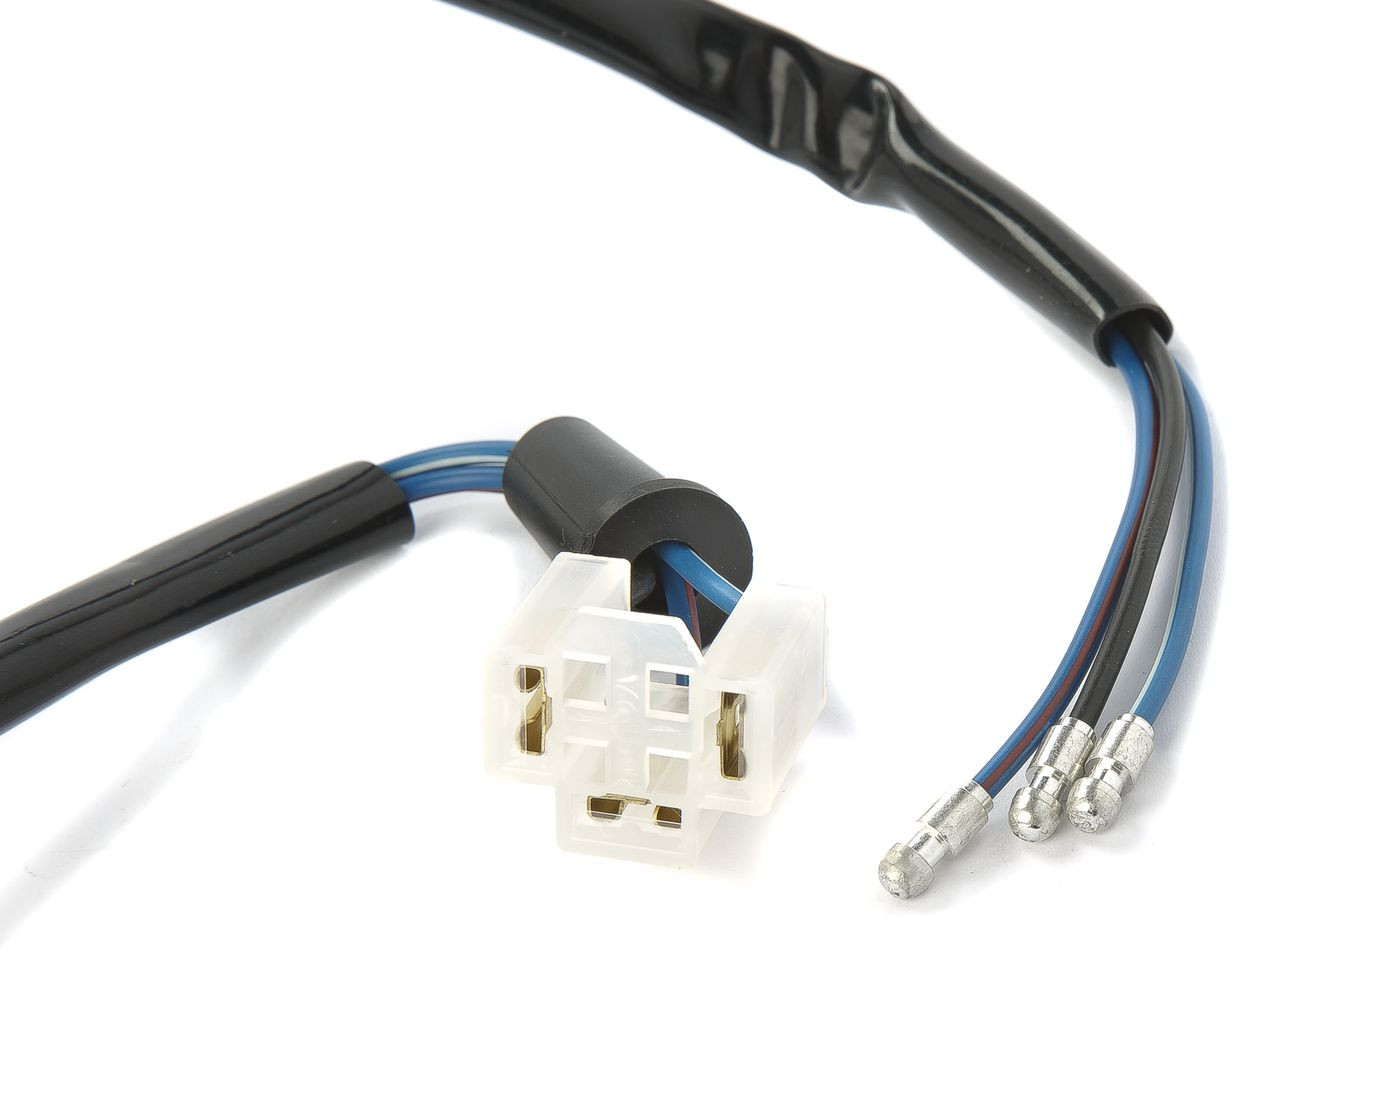 Connecting harness